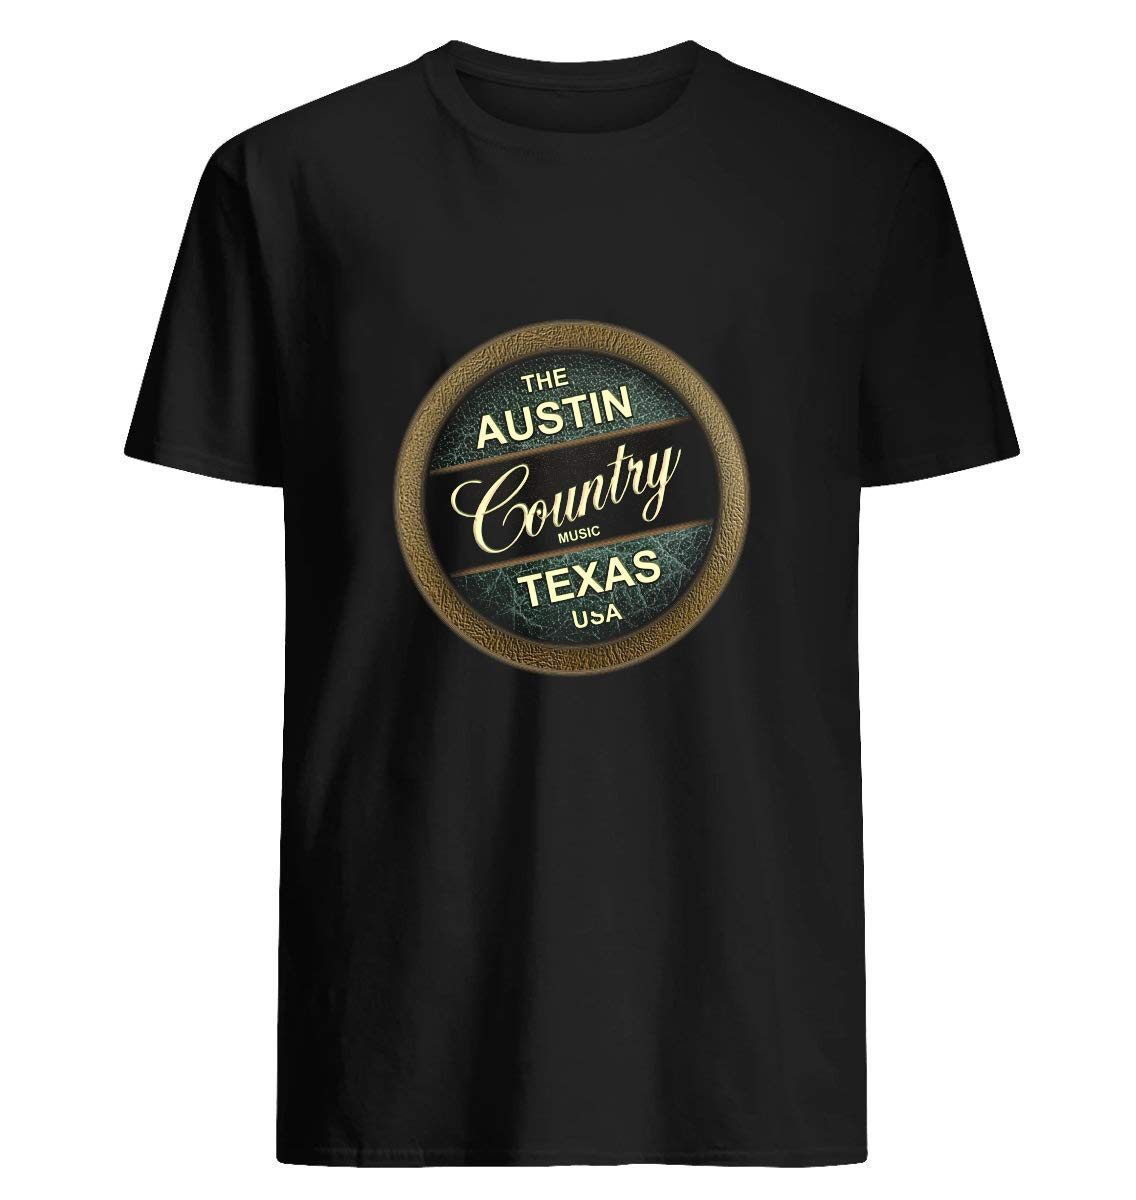 Austin Country Music Texas 28 T Shirt For Unisex